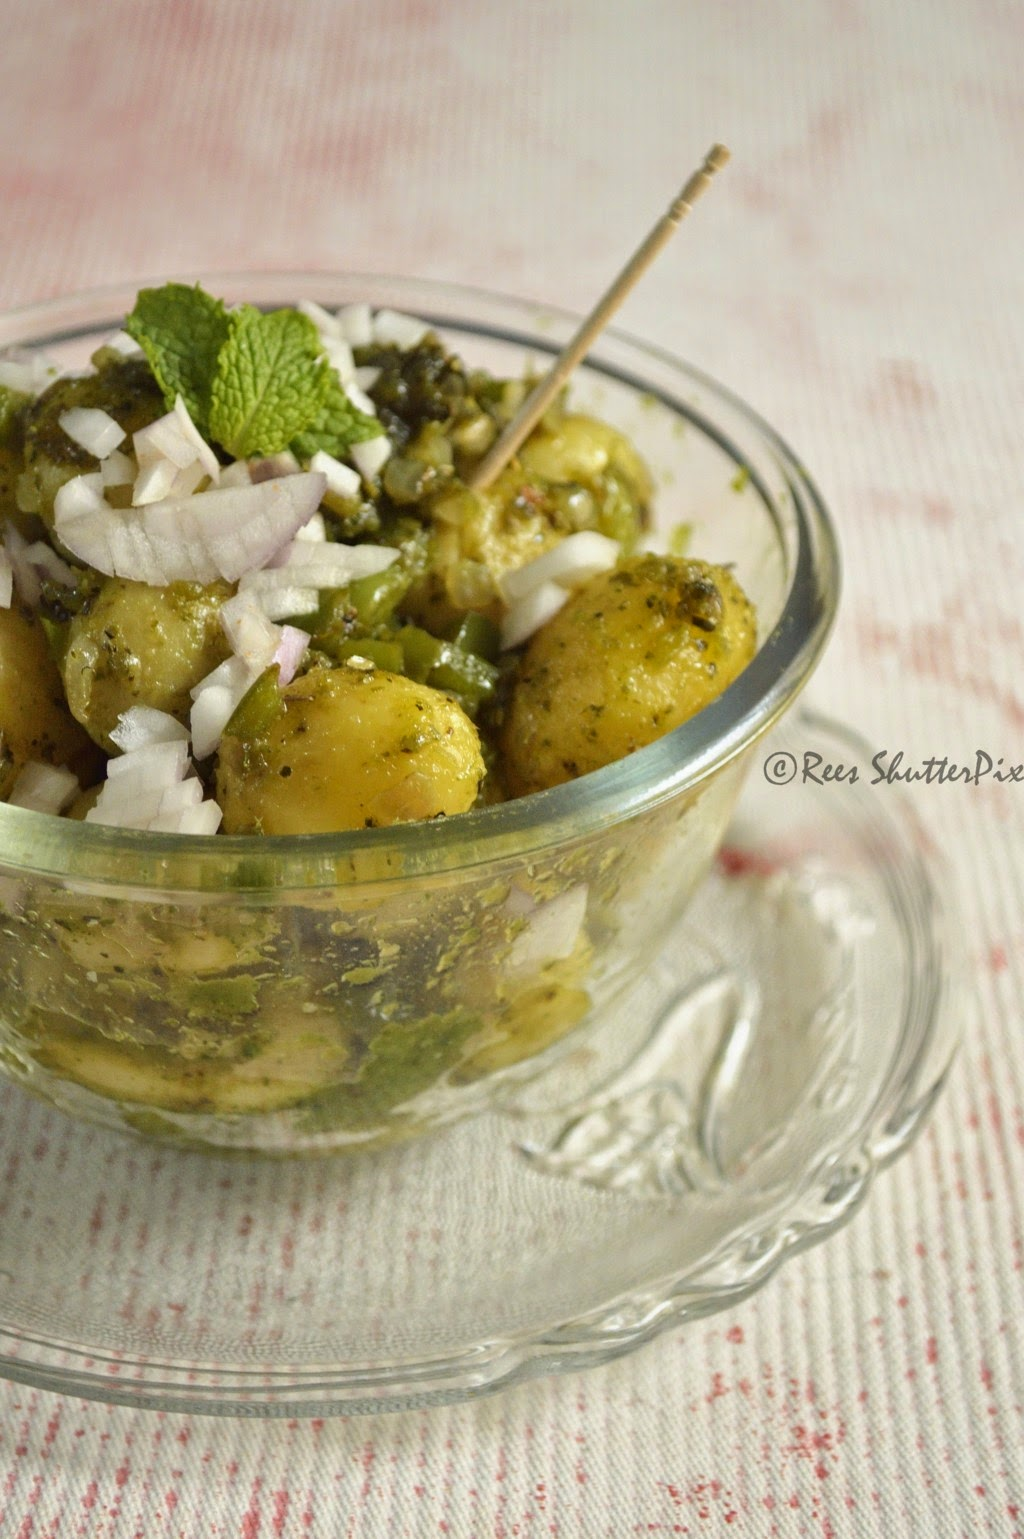 100 calorie snack, low calorie snacks, tarla dalal low calorie snacks, baby potatoes snack, chatpata chat recipe, aloo chaat recipe, baby potatoes recipe, mixed herbs chaat.